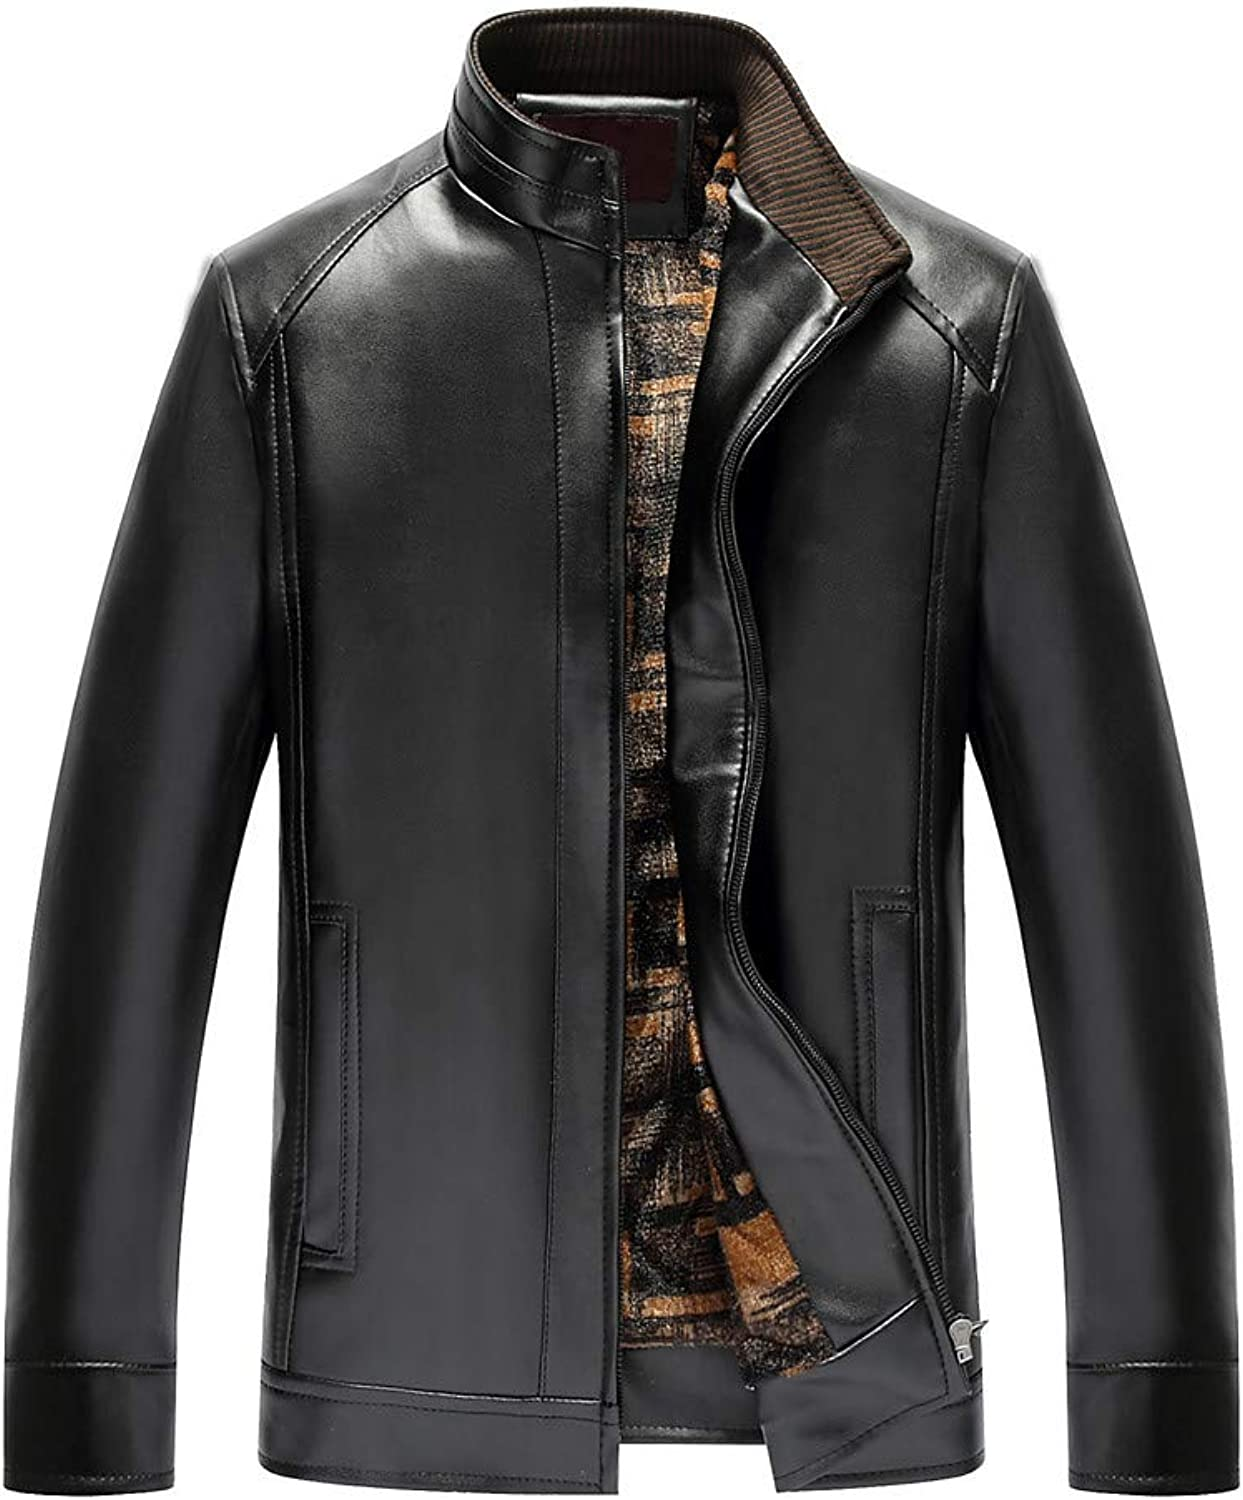 Mens Windbreaker,Men's Pure color Stand Collar Imitation Leather Business Coat,Jacket PU Leather Men